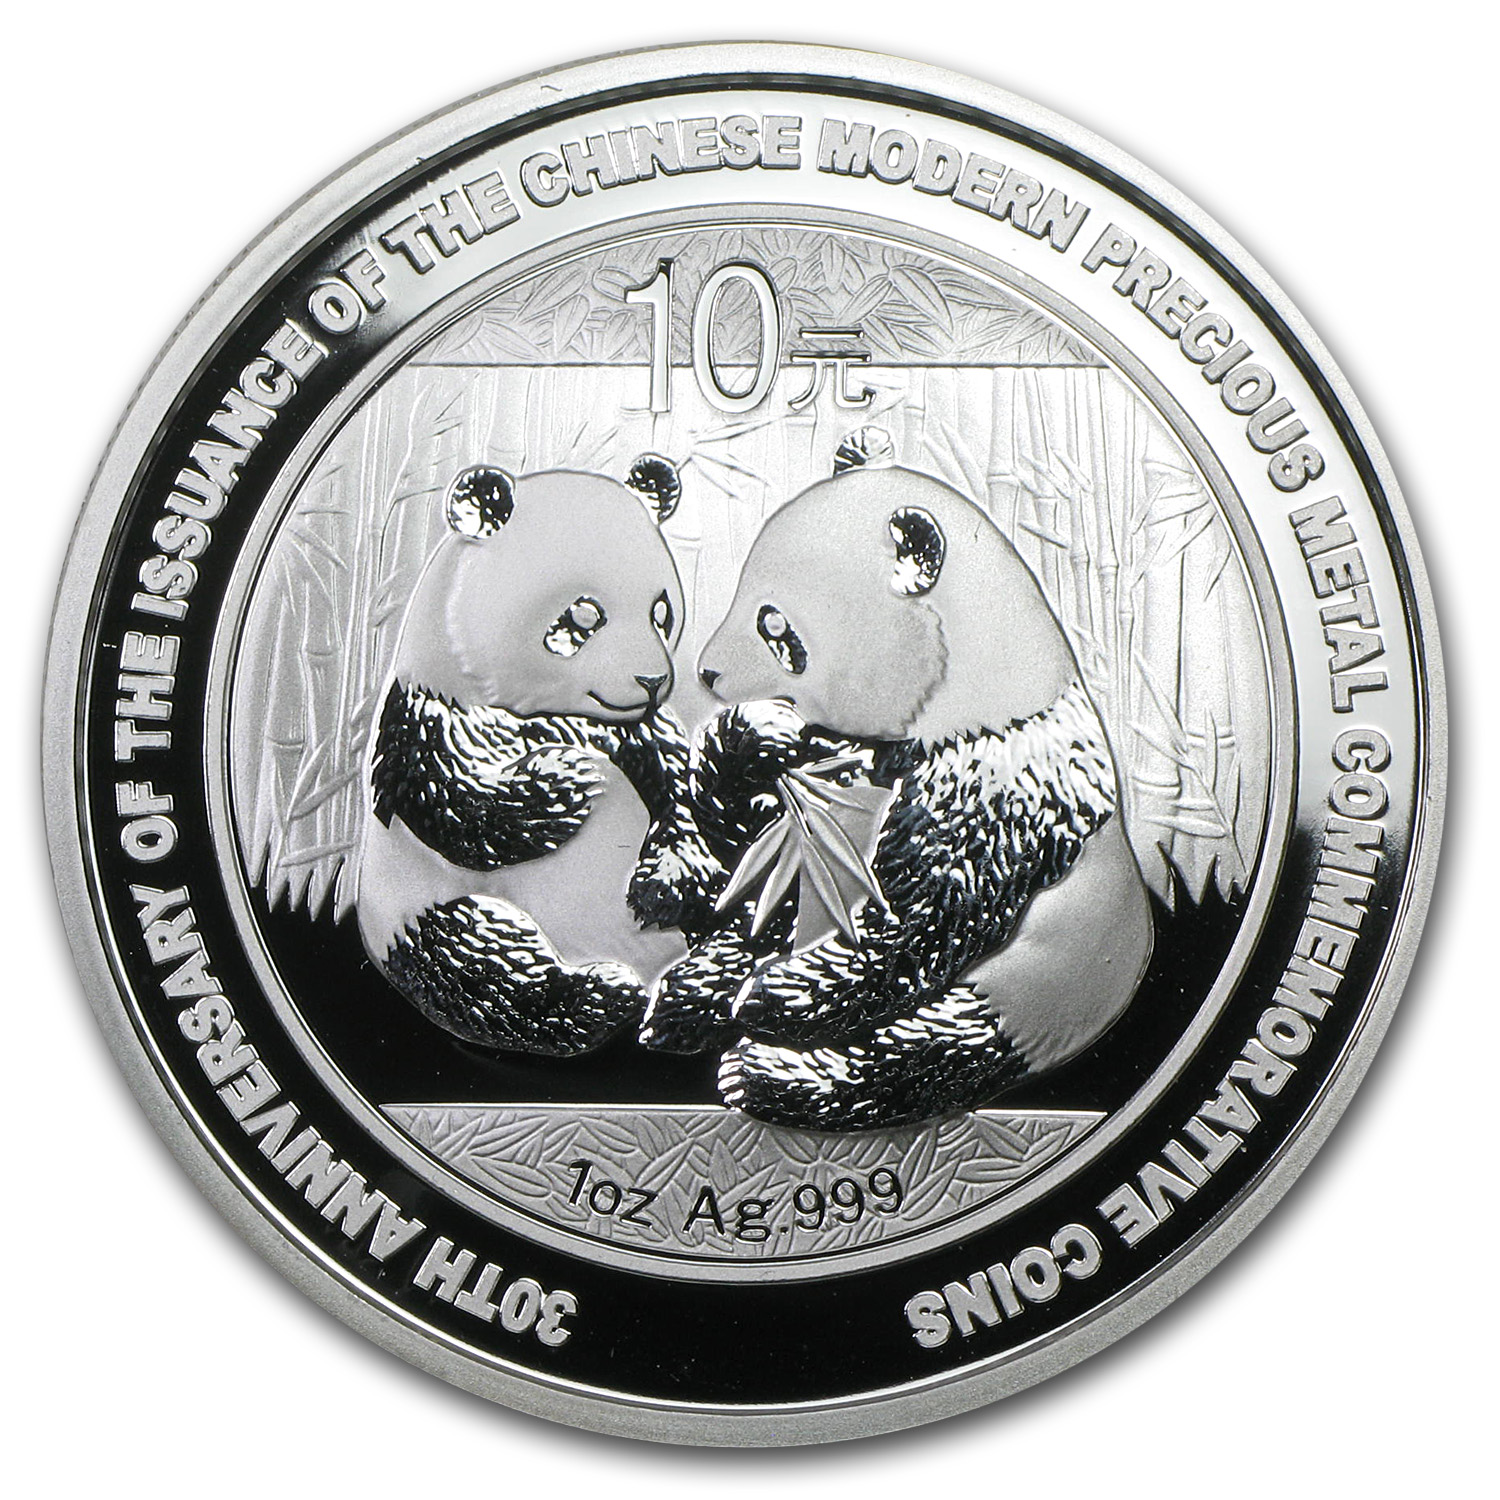 2009 1 oz Silver Chinese Panda BU (30th Anniversary, In Capsule)